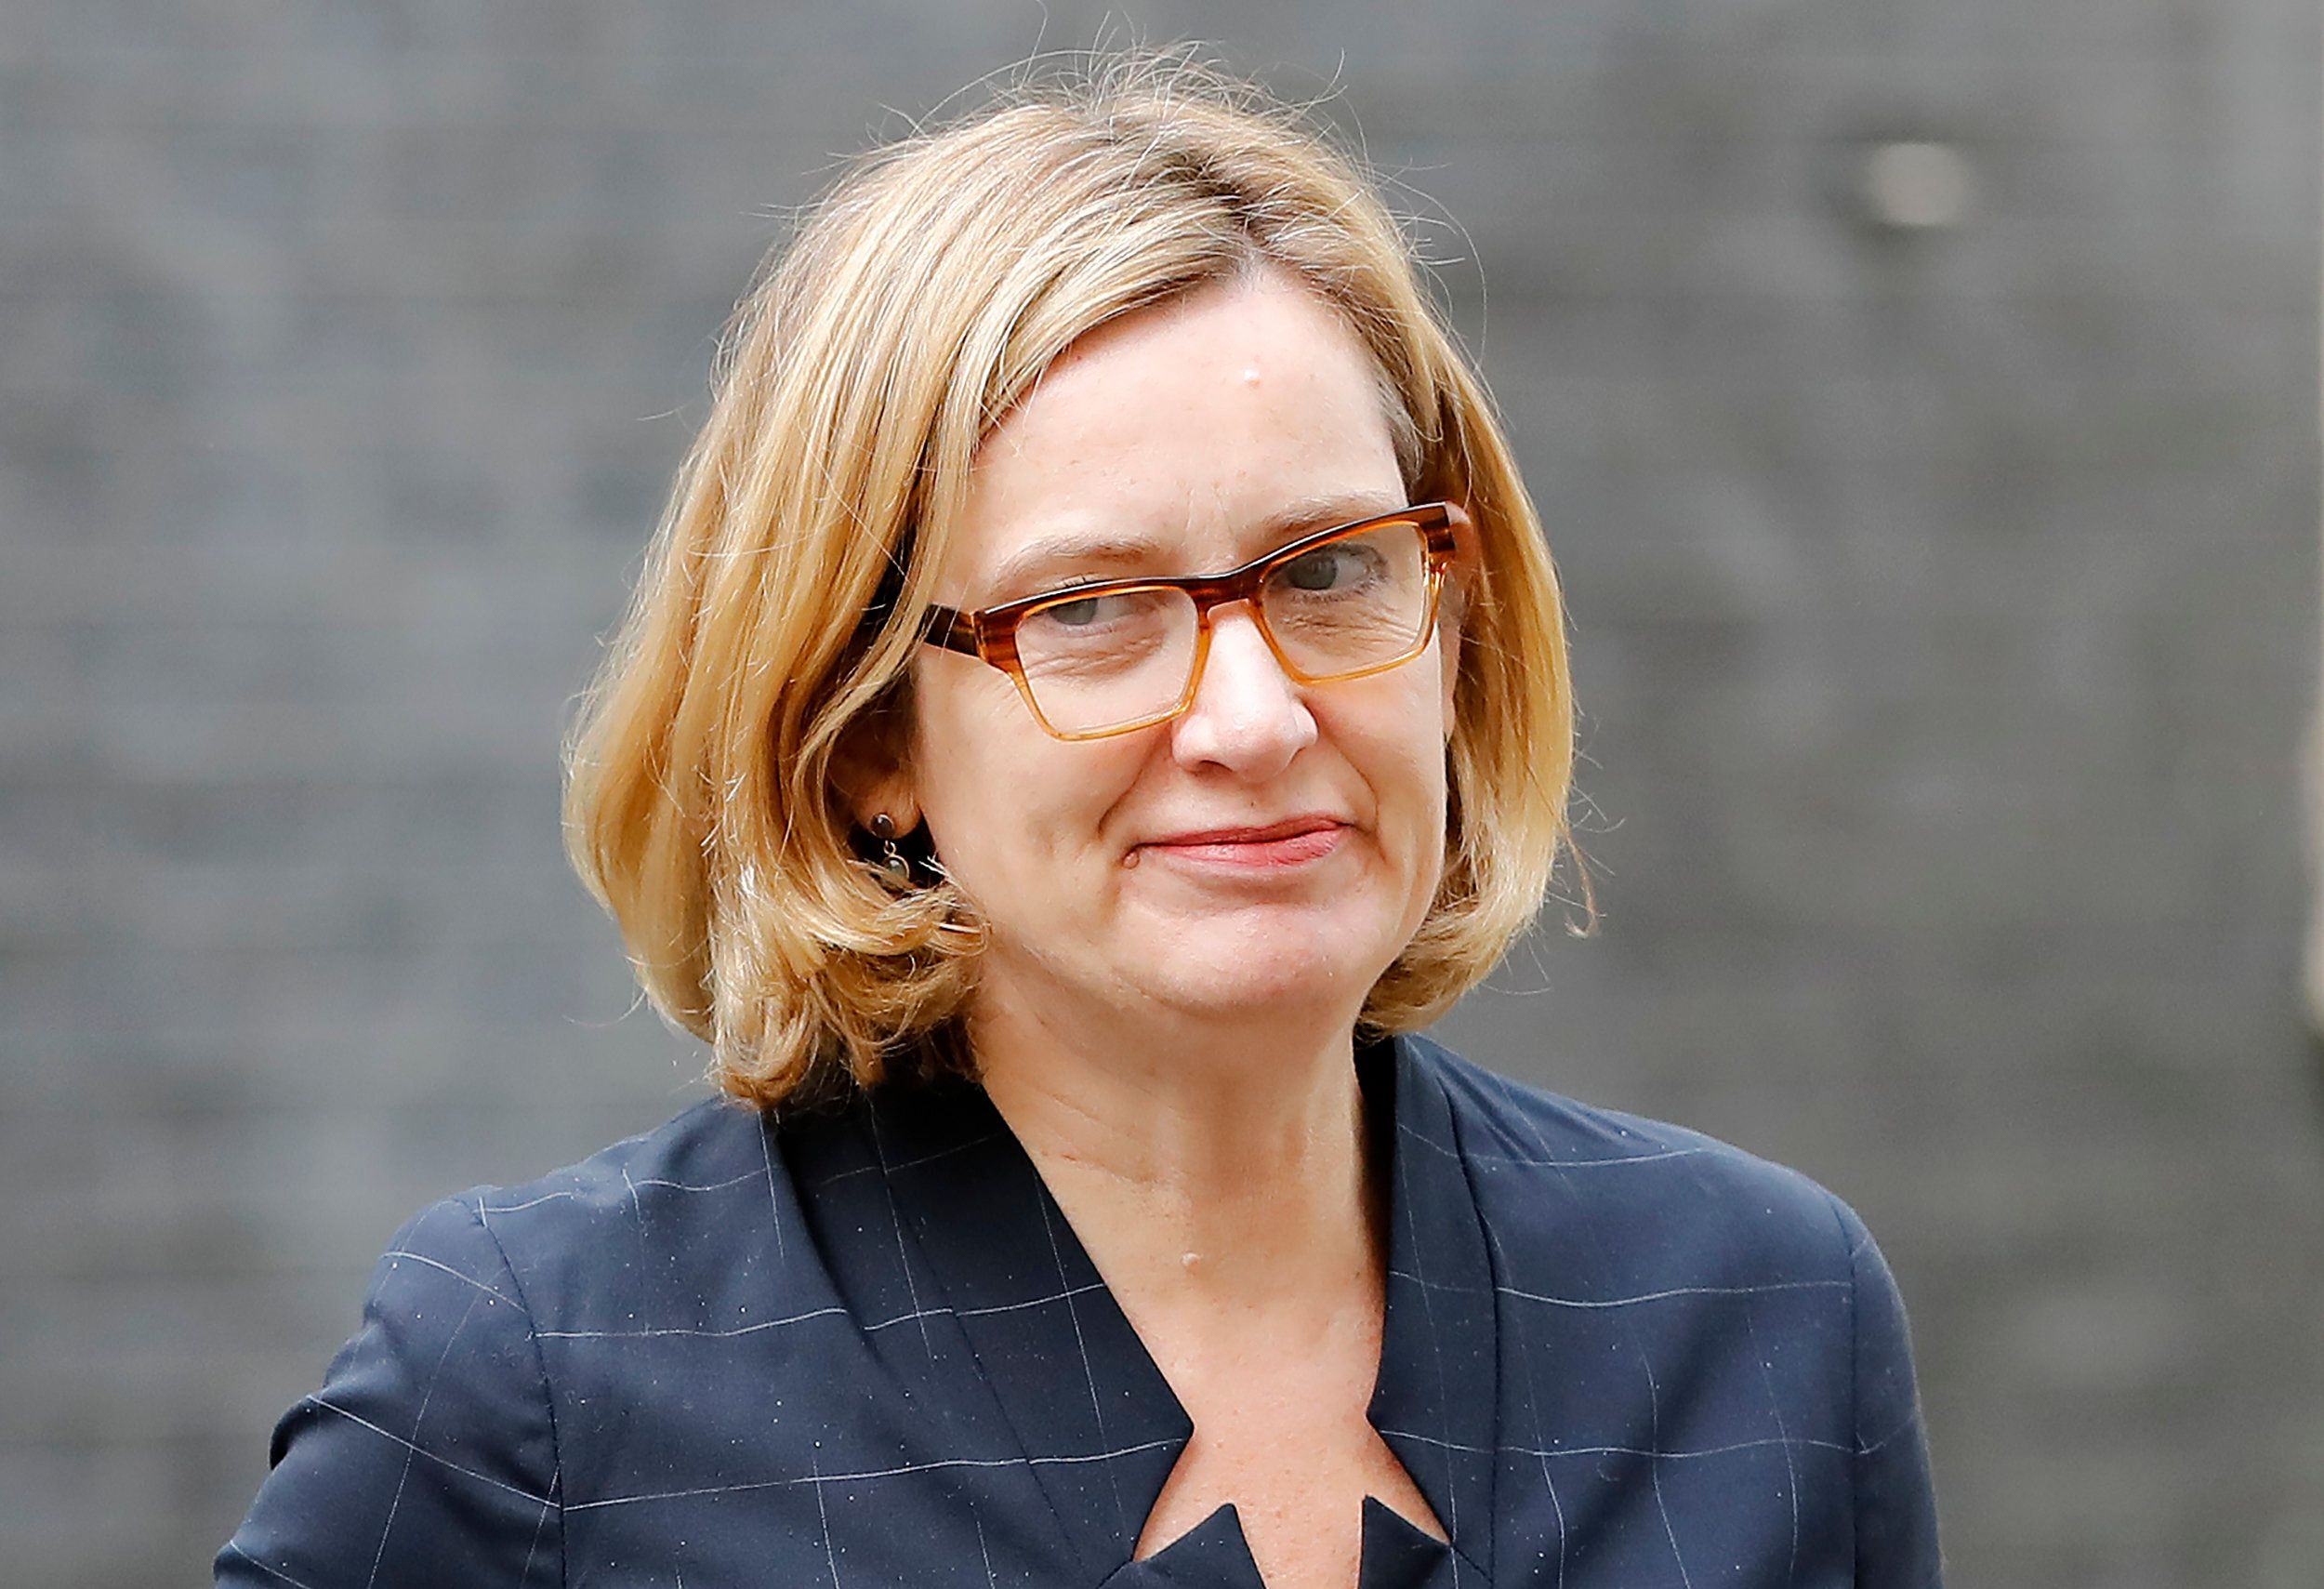 Amber Rudd is under increasing pressure over the Windrush immigration scandal